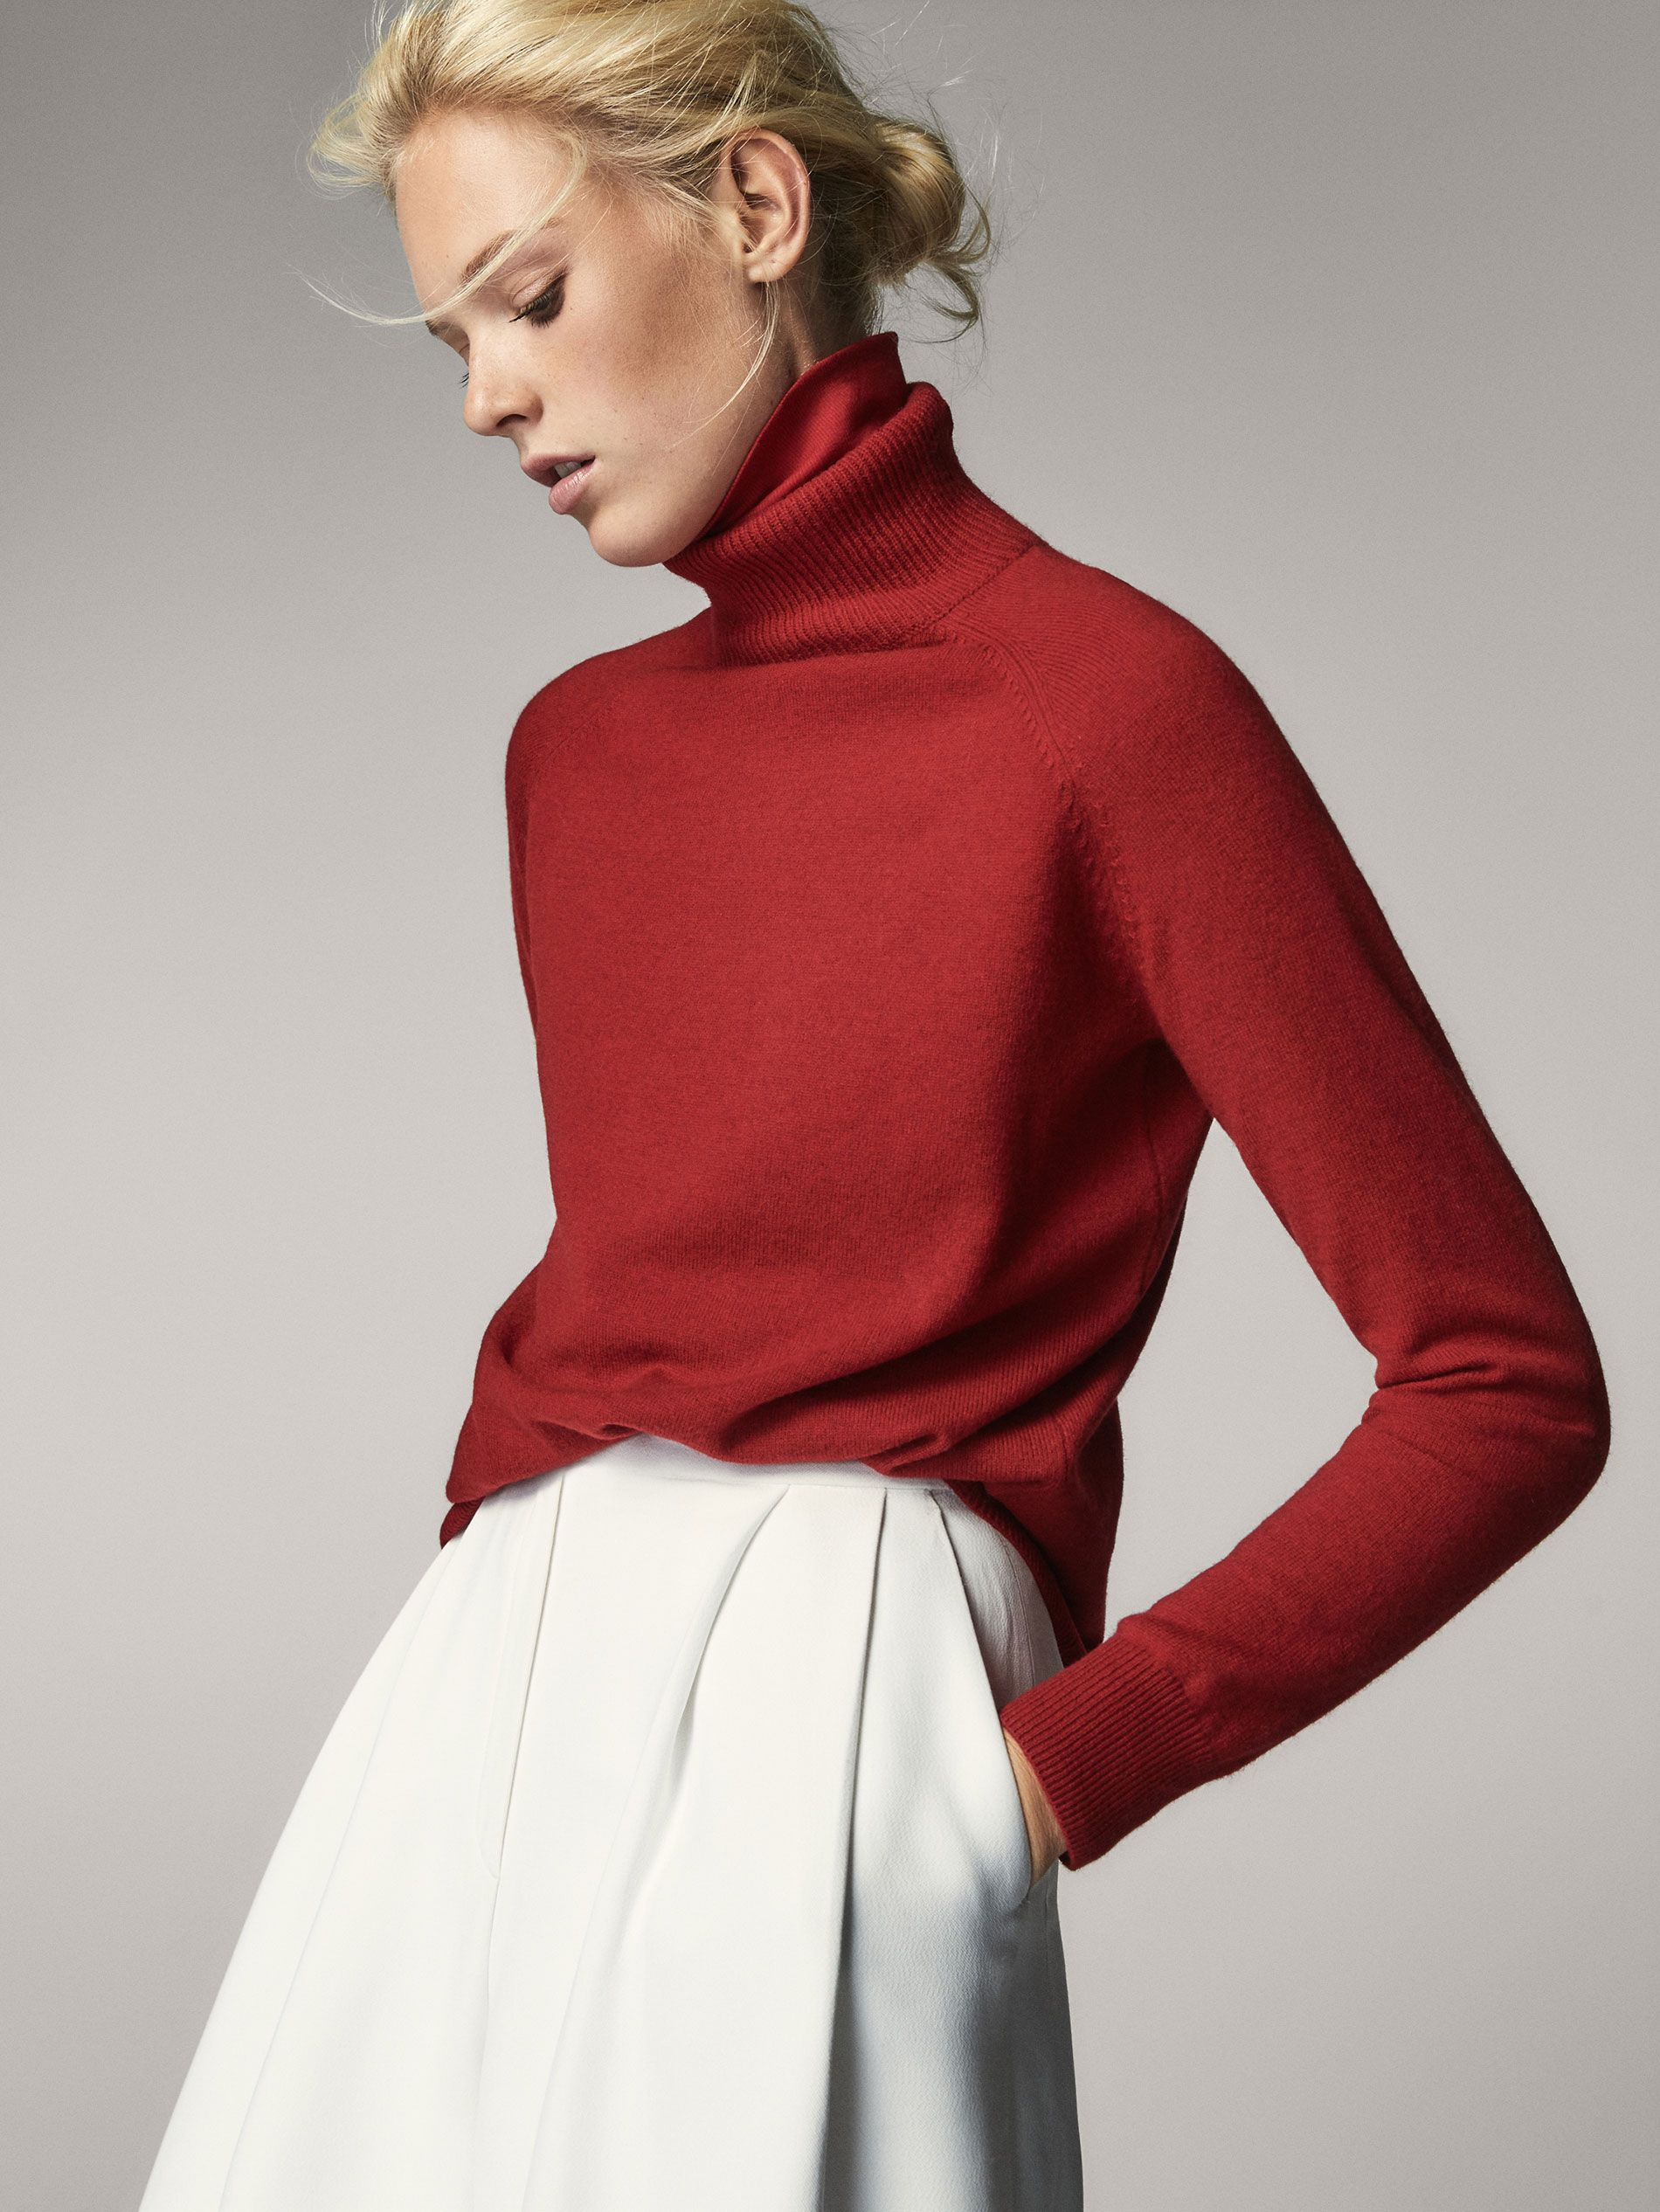 4e6100e8f7 Fall Winter 2017 Women´s SOLID-COLOURED WOOL AND CASHMERE SWEATER at Massimo  Dutti for 54.95. Effortless elegance!